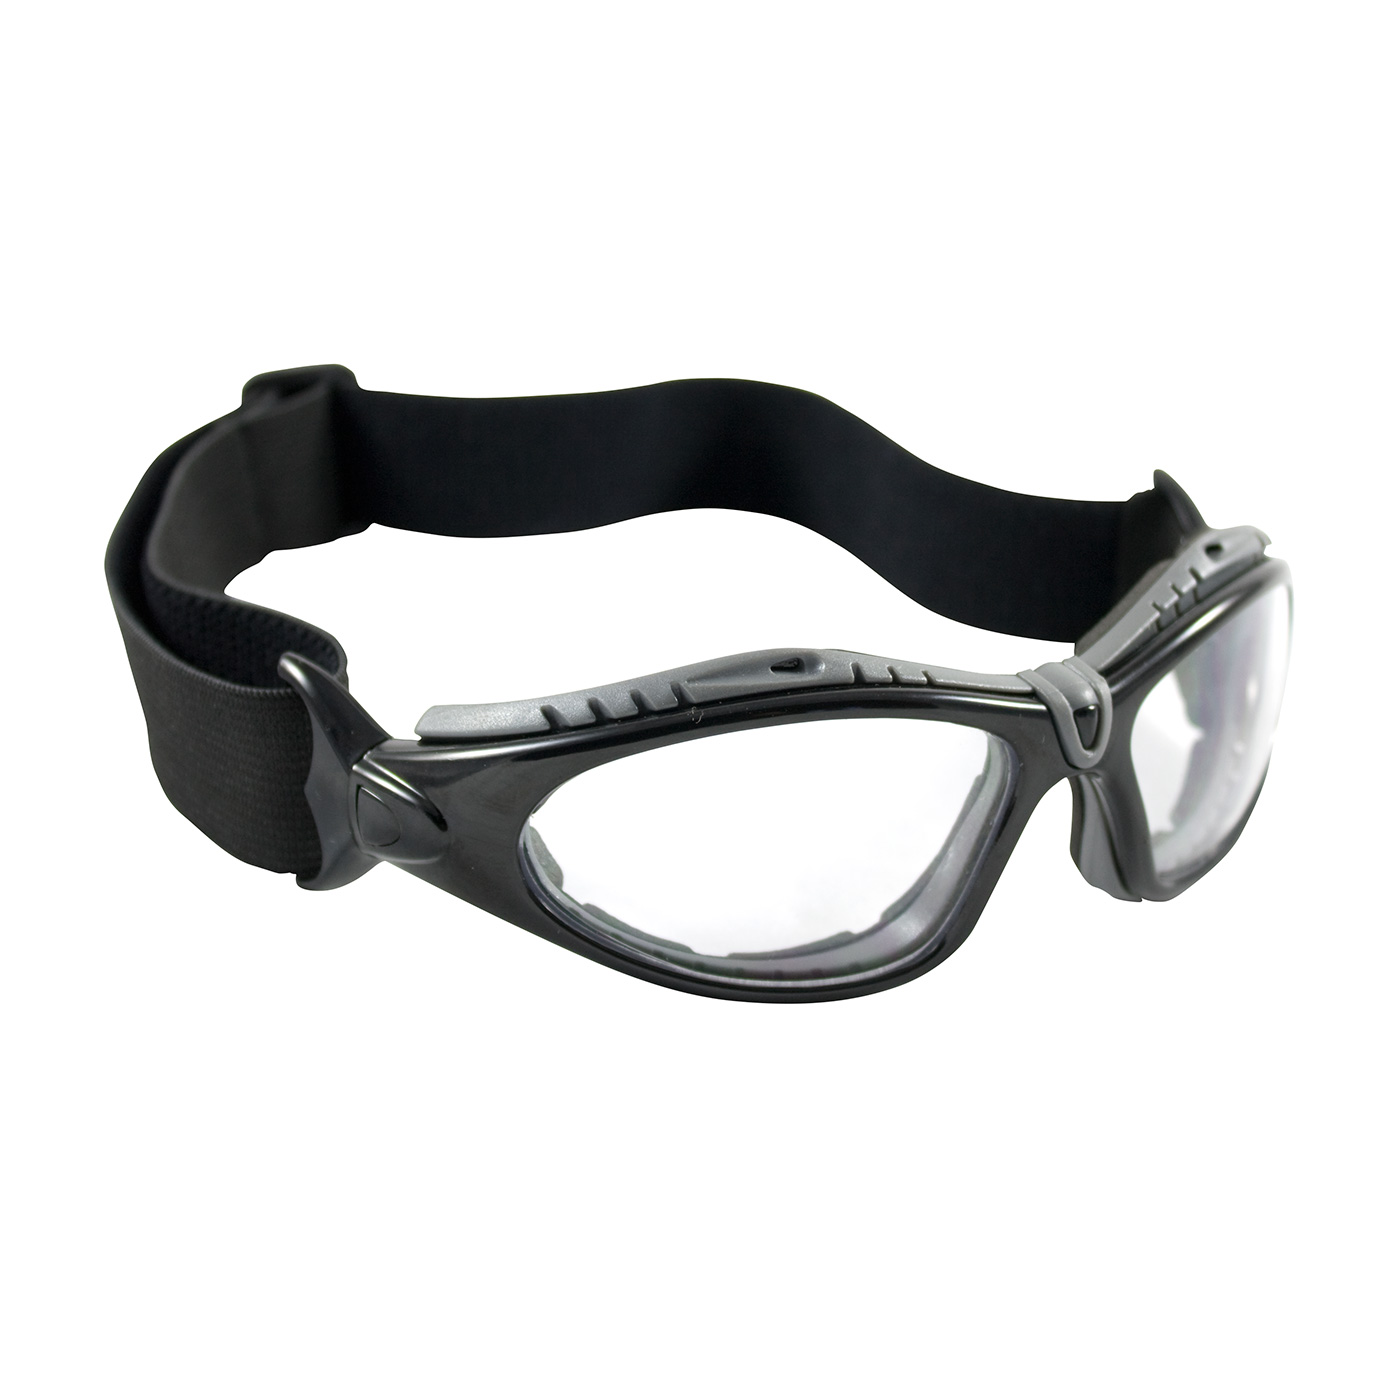 Eyeglass Frame Rep Jobs : Fuselage Protective Industrial Products